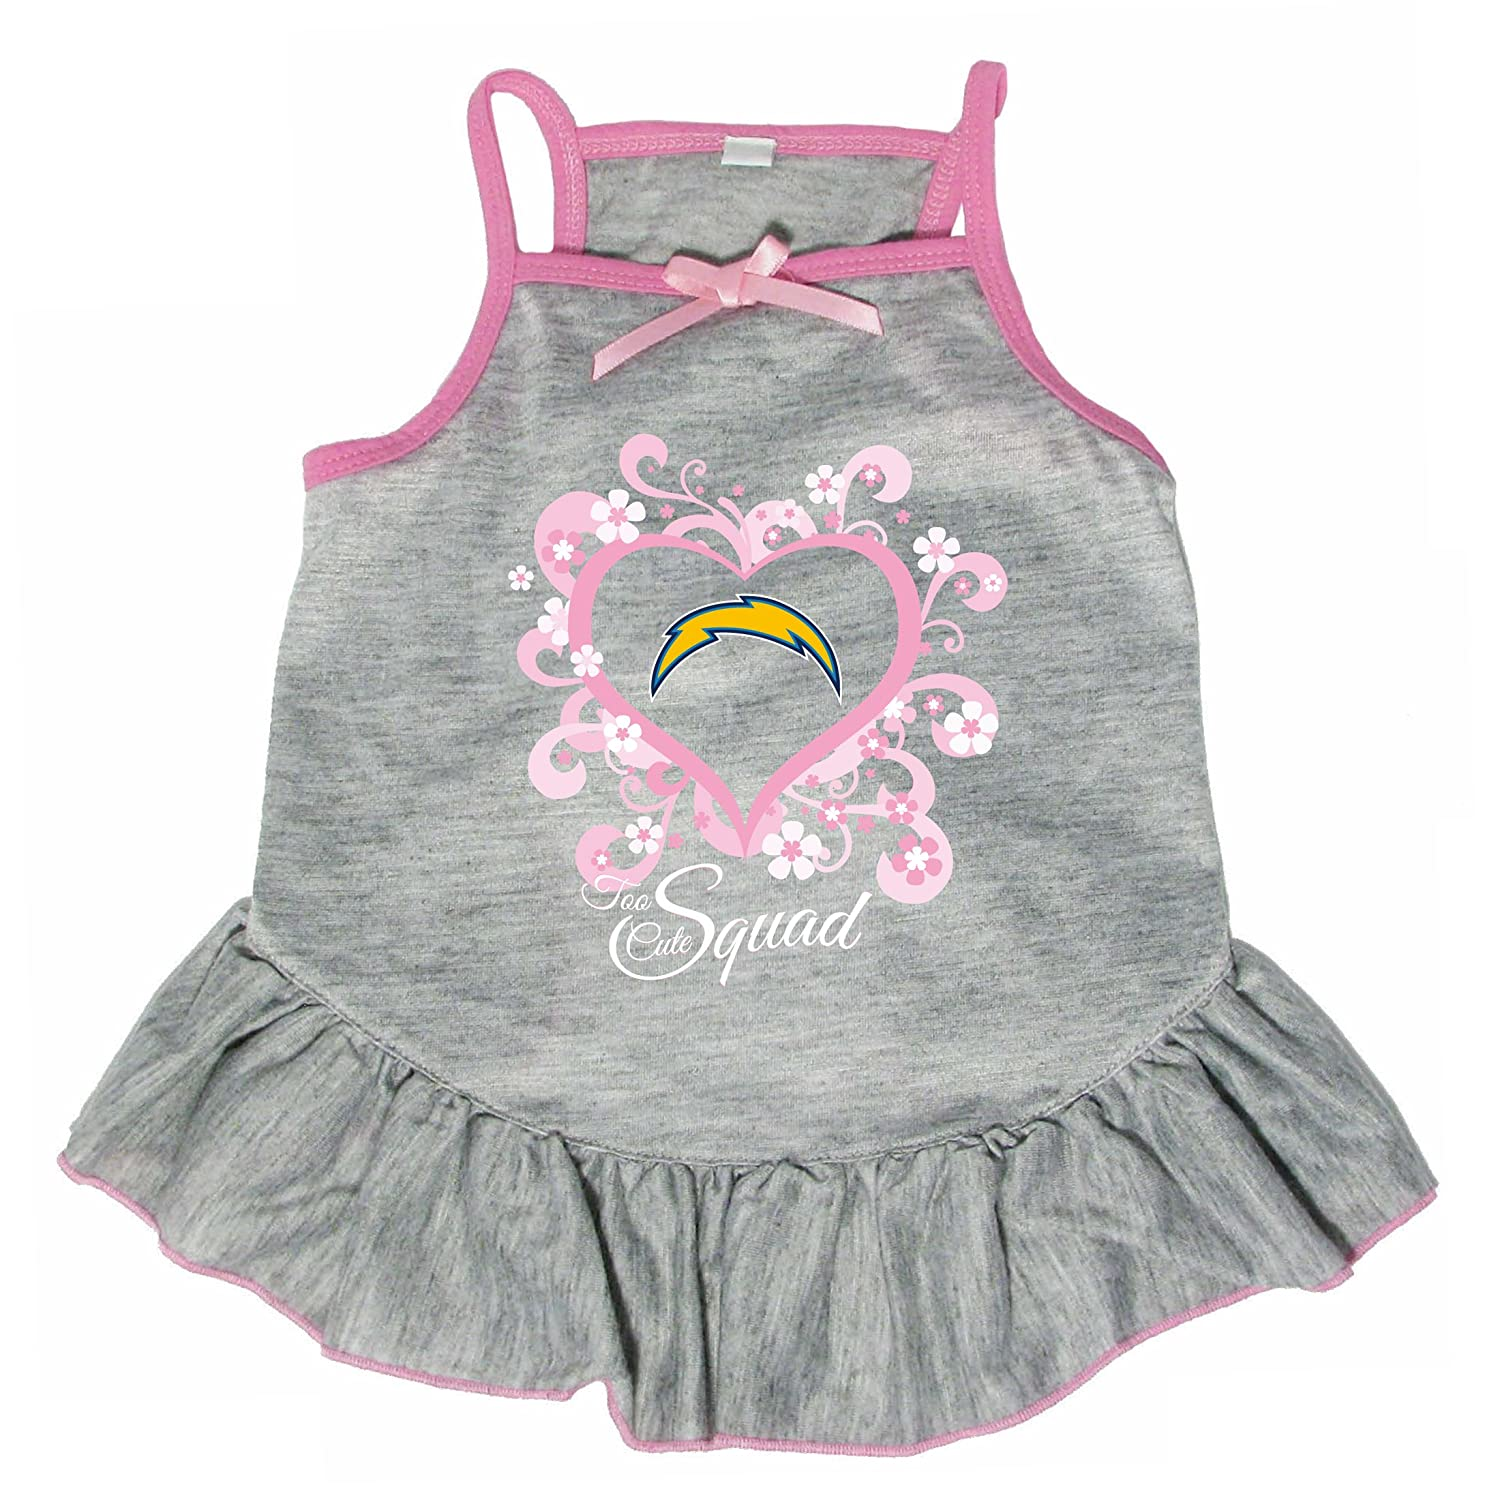 Hunter 4238-10-5700 NFL Chargers Too Cute Pet Dress, Large